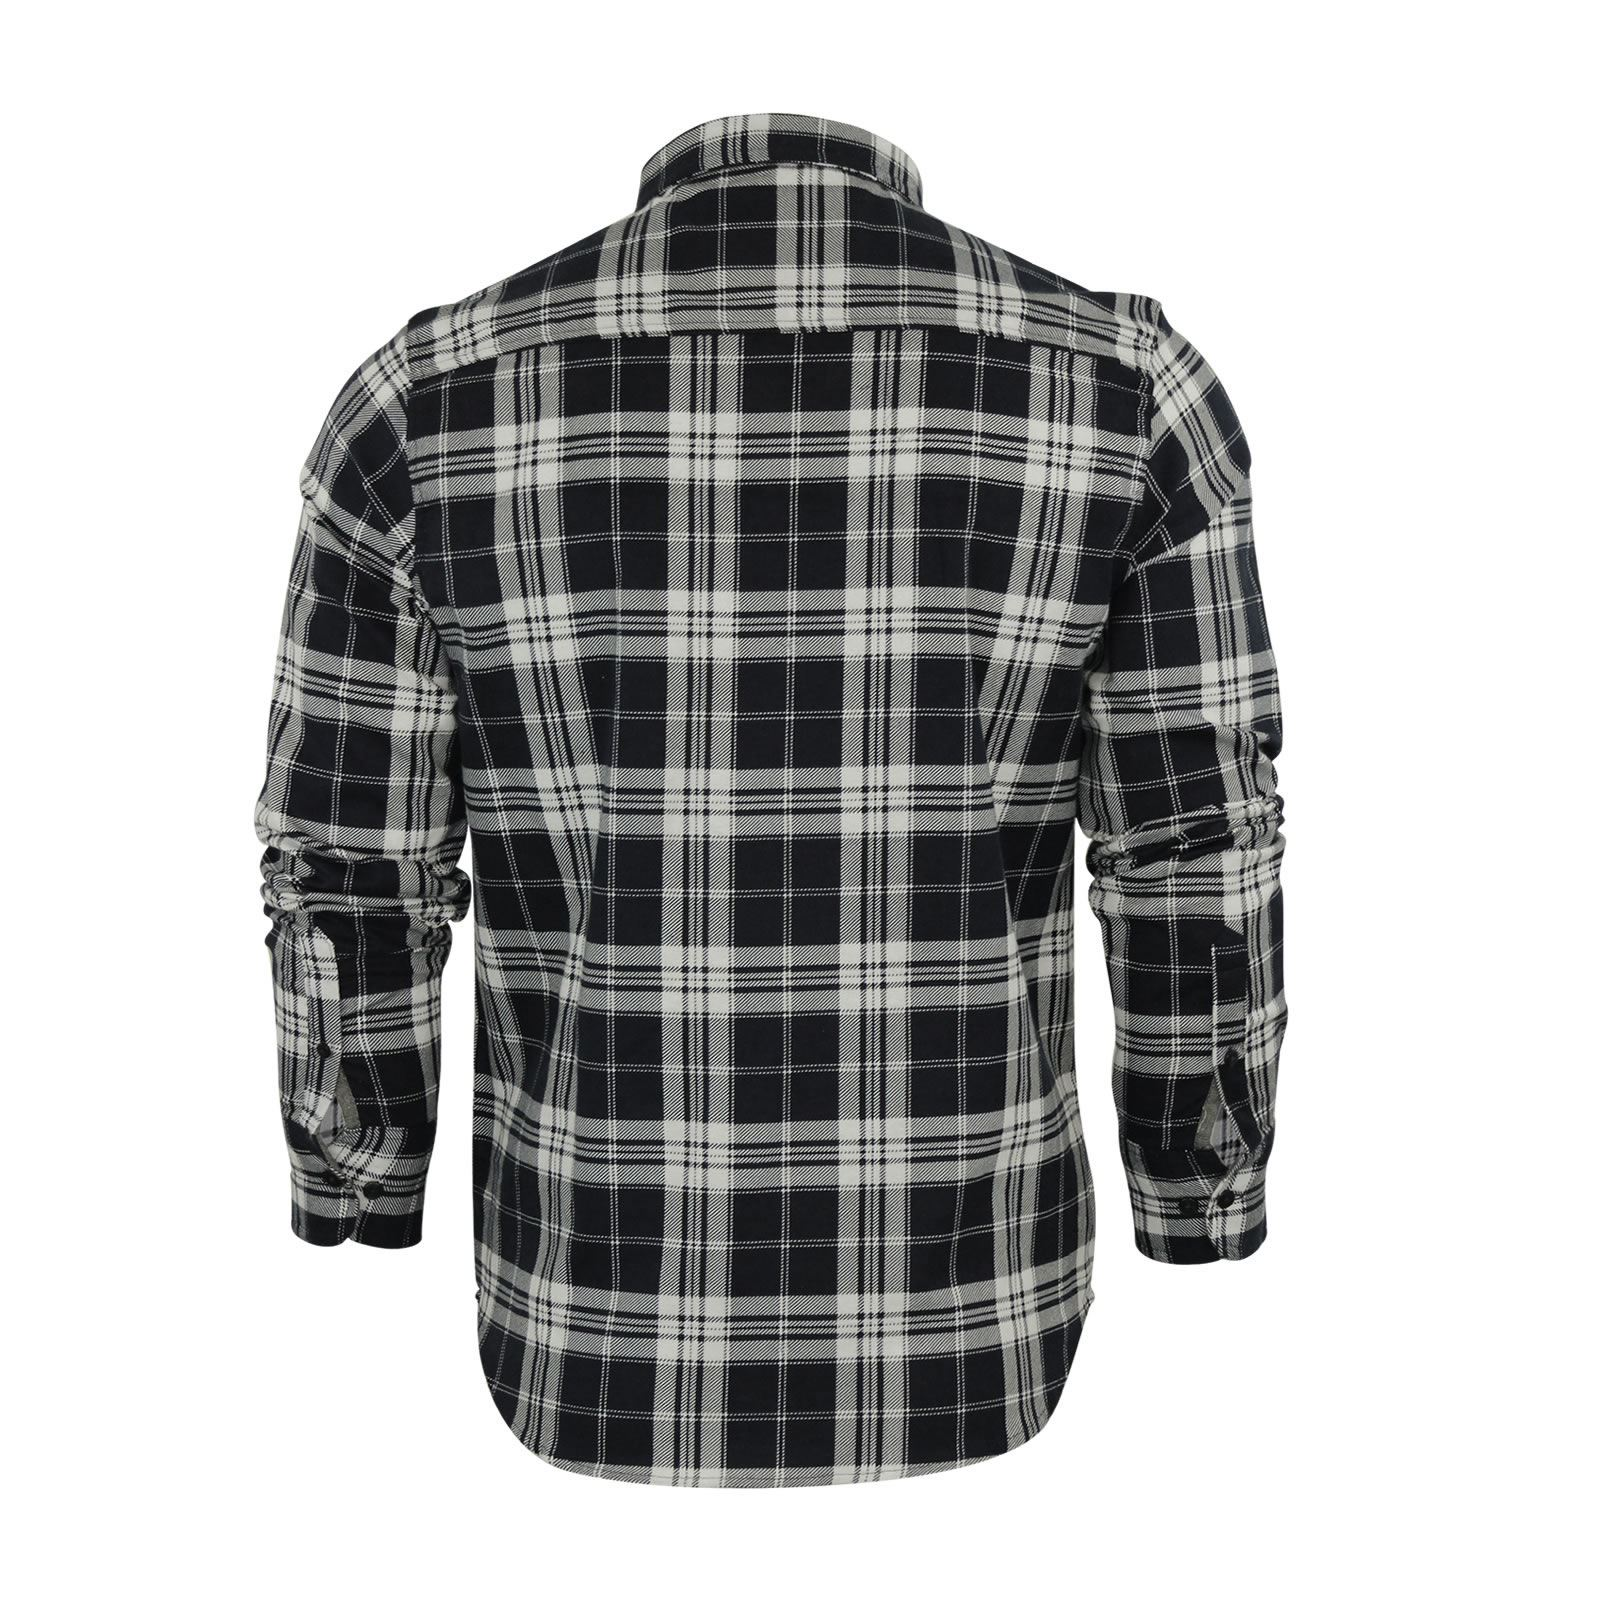 Mens-Check-Shirt-Brave-Soul-Flannel-Brushed-Cotton-Long-Sleeve-Casual-Top thumbnail 27